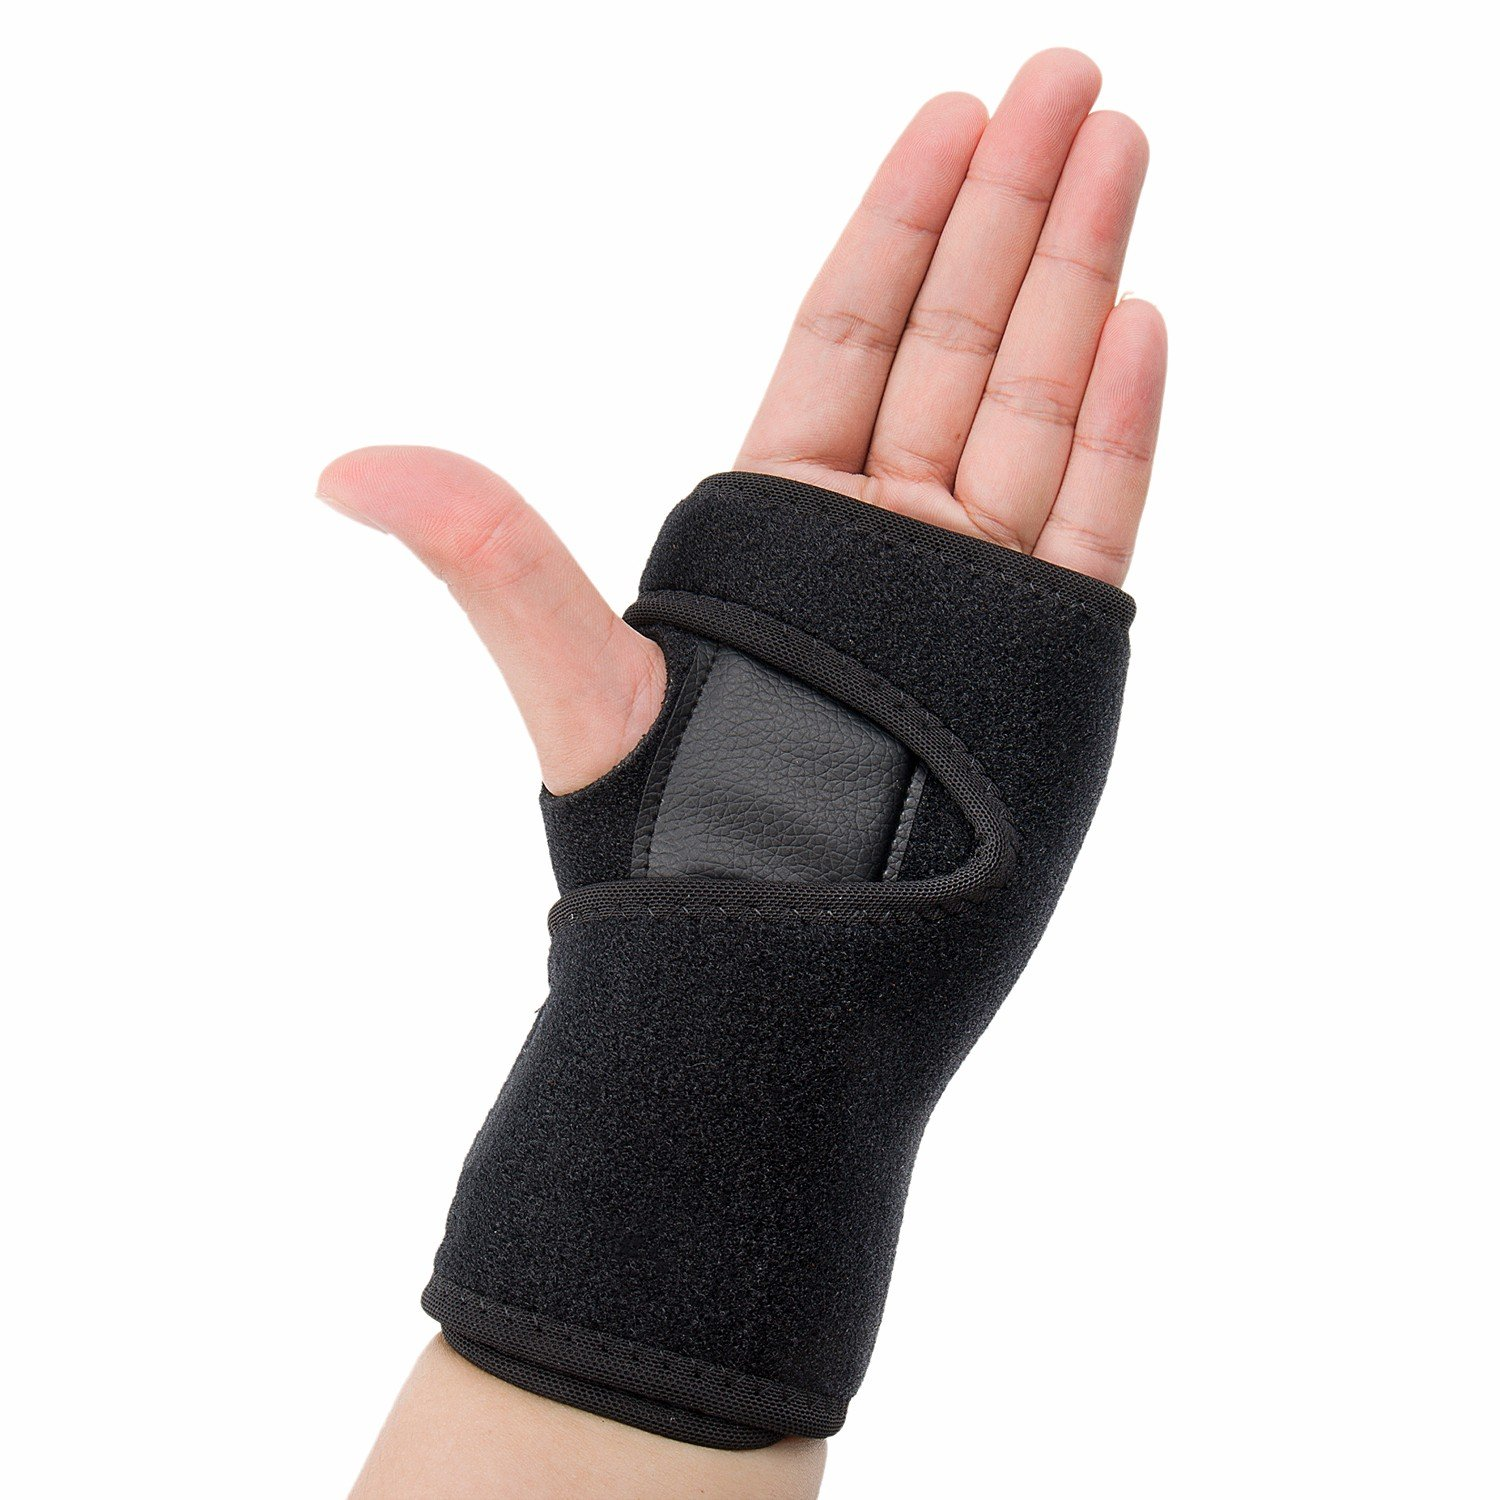 CFR Wrist Support Braces Palm Brace Hand Wraps Double Removable Steel Splints for Carpal Tunnel, Tendonitis, Wrist Pain & Sports Injuries - One Pair UPS Post